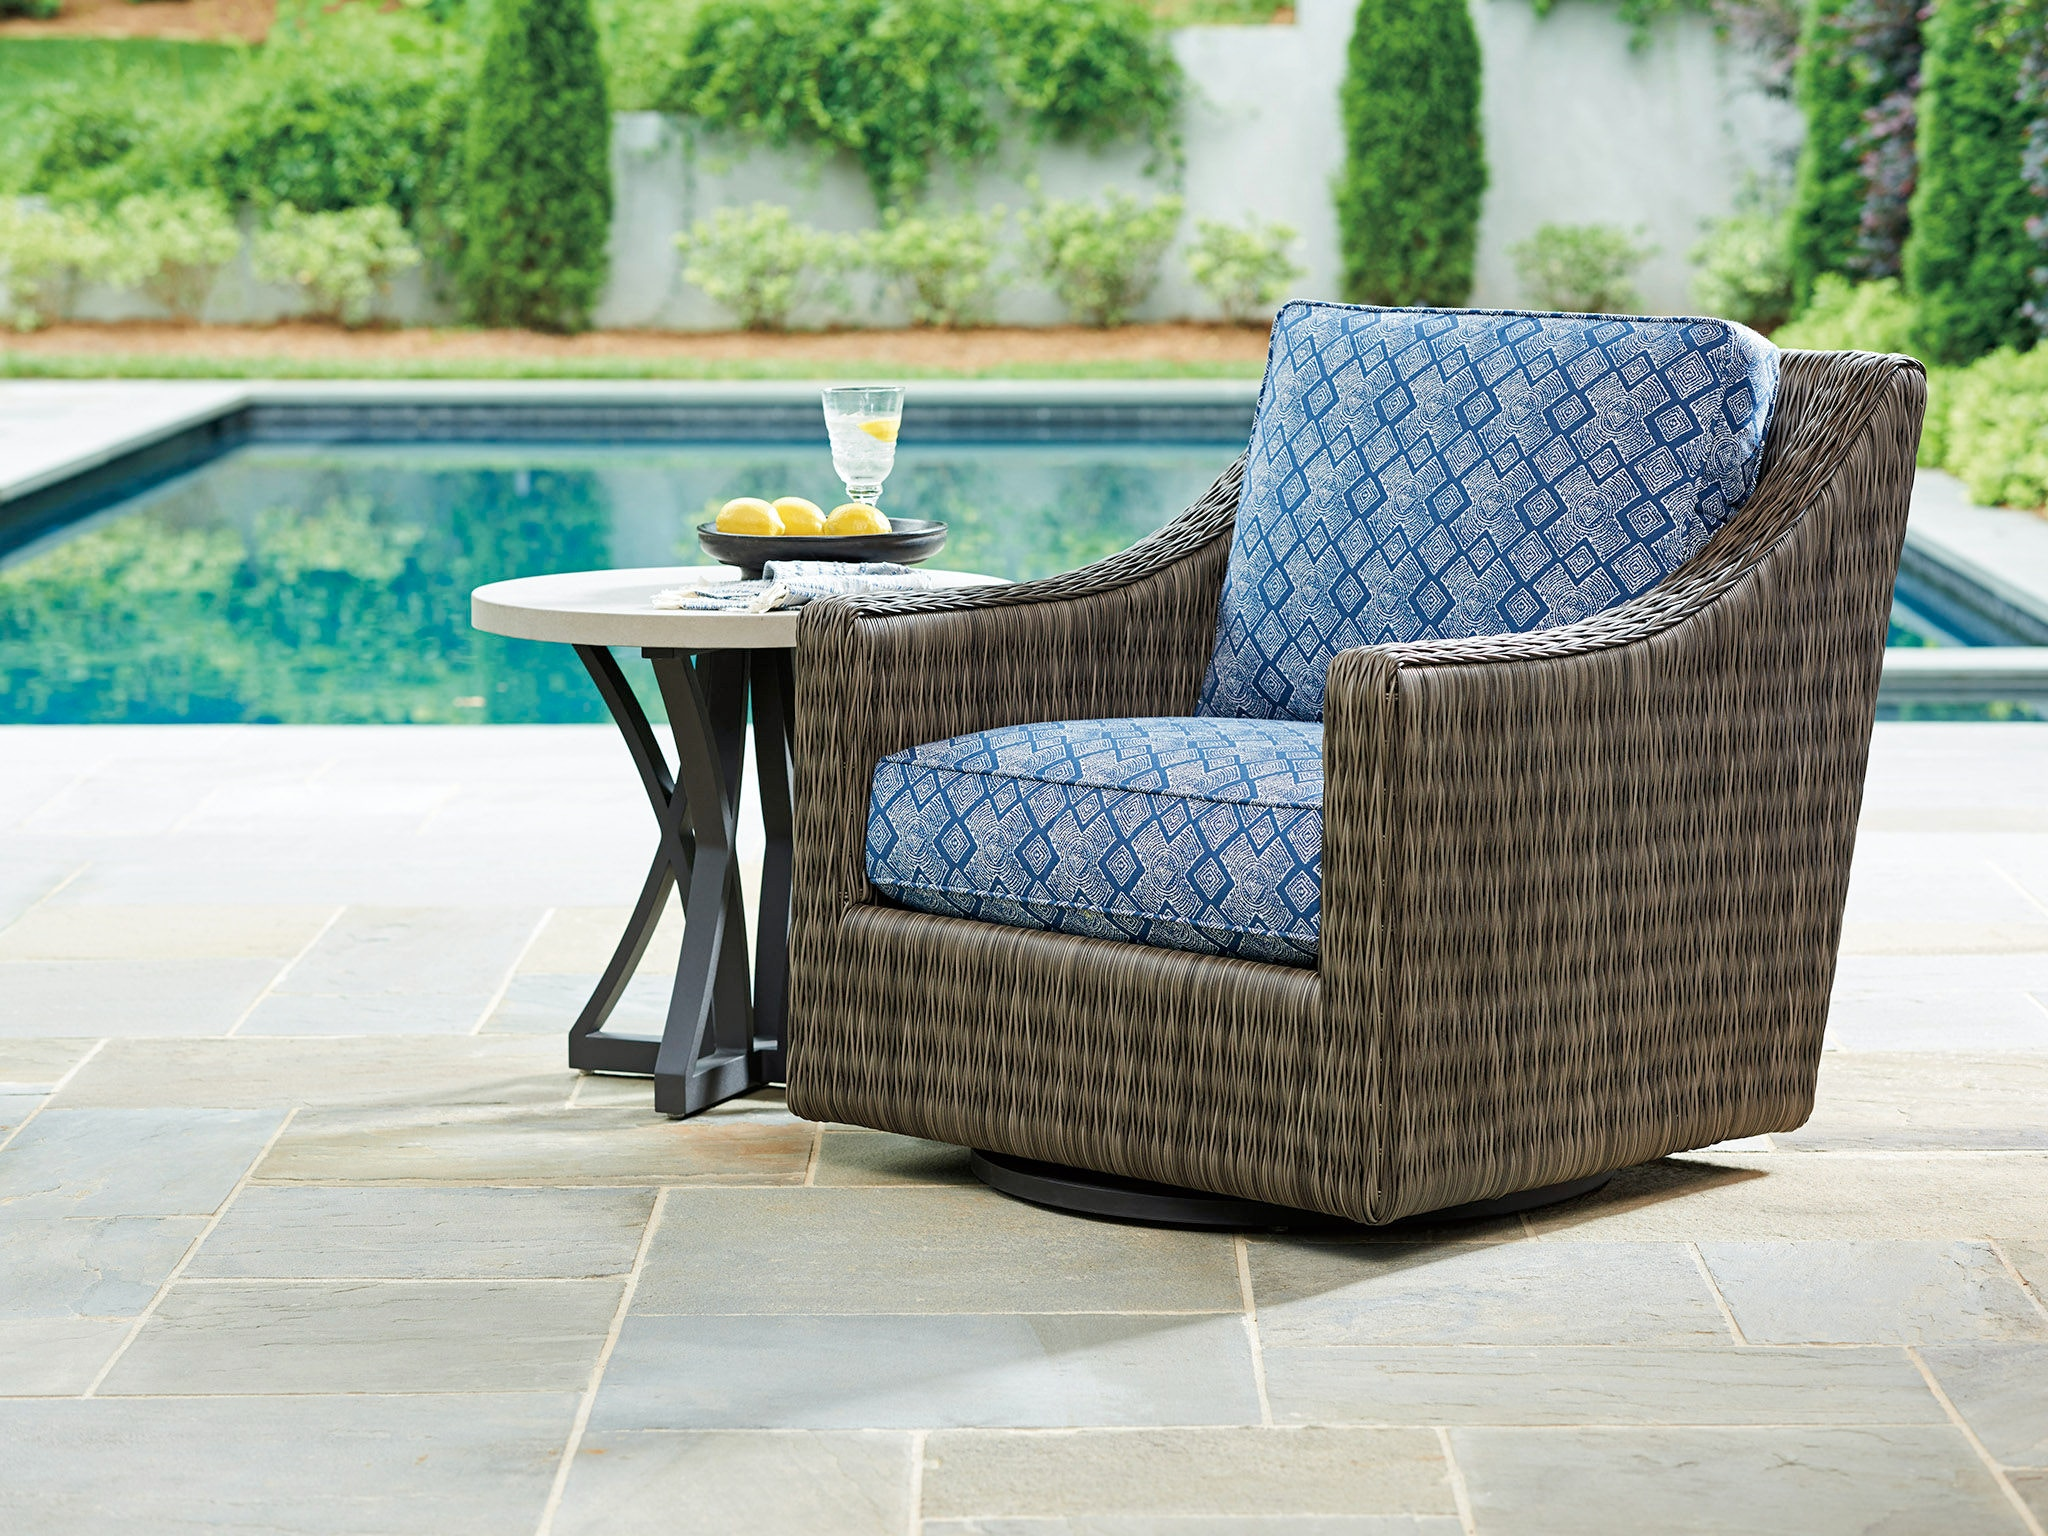 Tommy Bahama Outdoor Living Swivel Glider Lounge Chair 3900 11SG